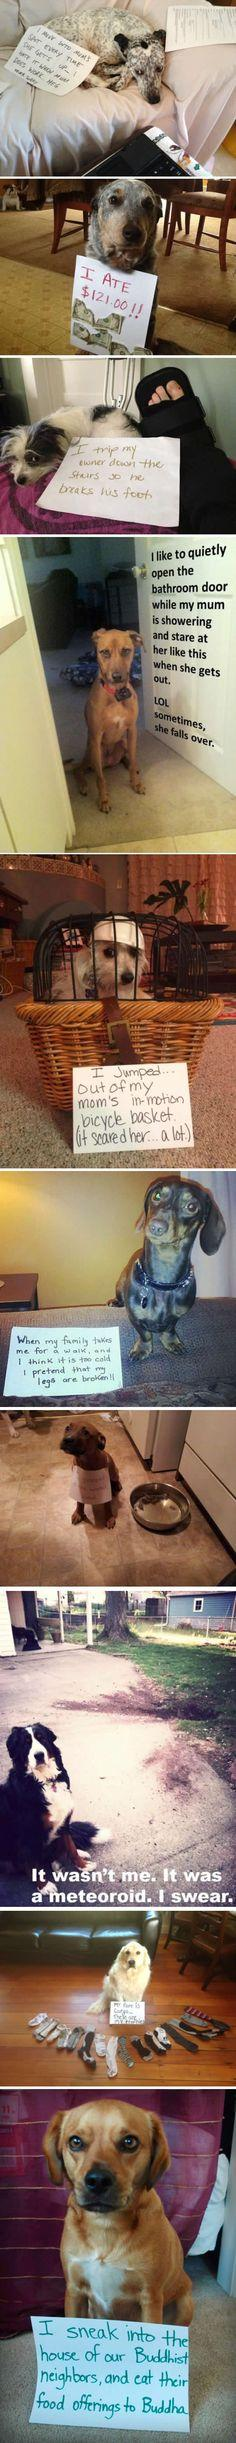 Dog shaming site --one of the joys of the Internet (Don't think any dogs were hurt in the production of these photos): Dog Shame, Dog Shaming, Bad Dog, Dog Confessions, Animal Shaming, Pet Shaming